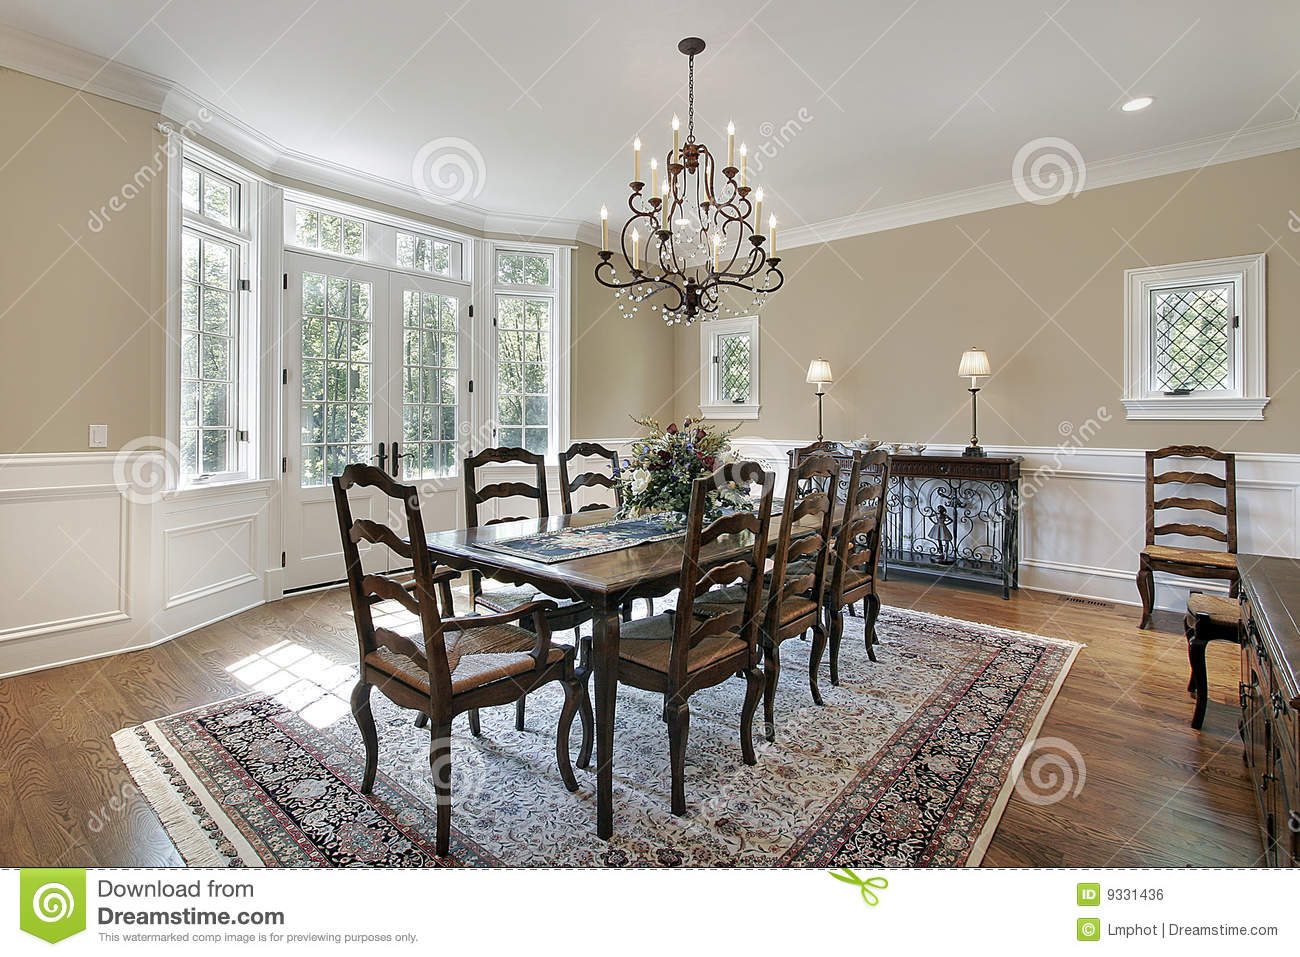 Dining room with patio entrance royalty free stock image for Dining room entrance